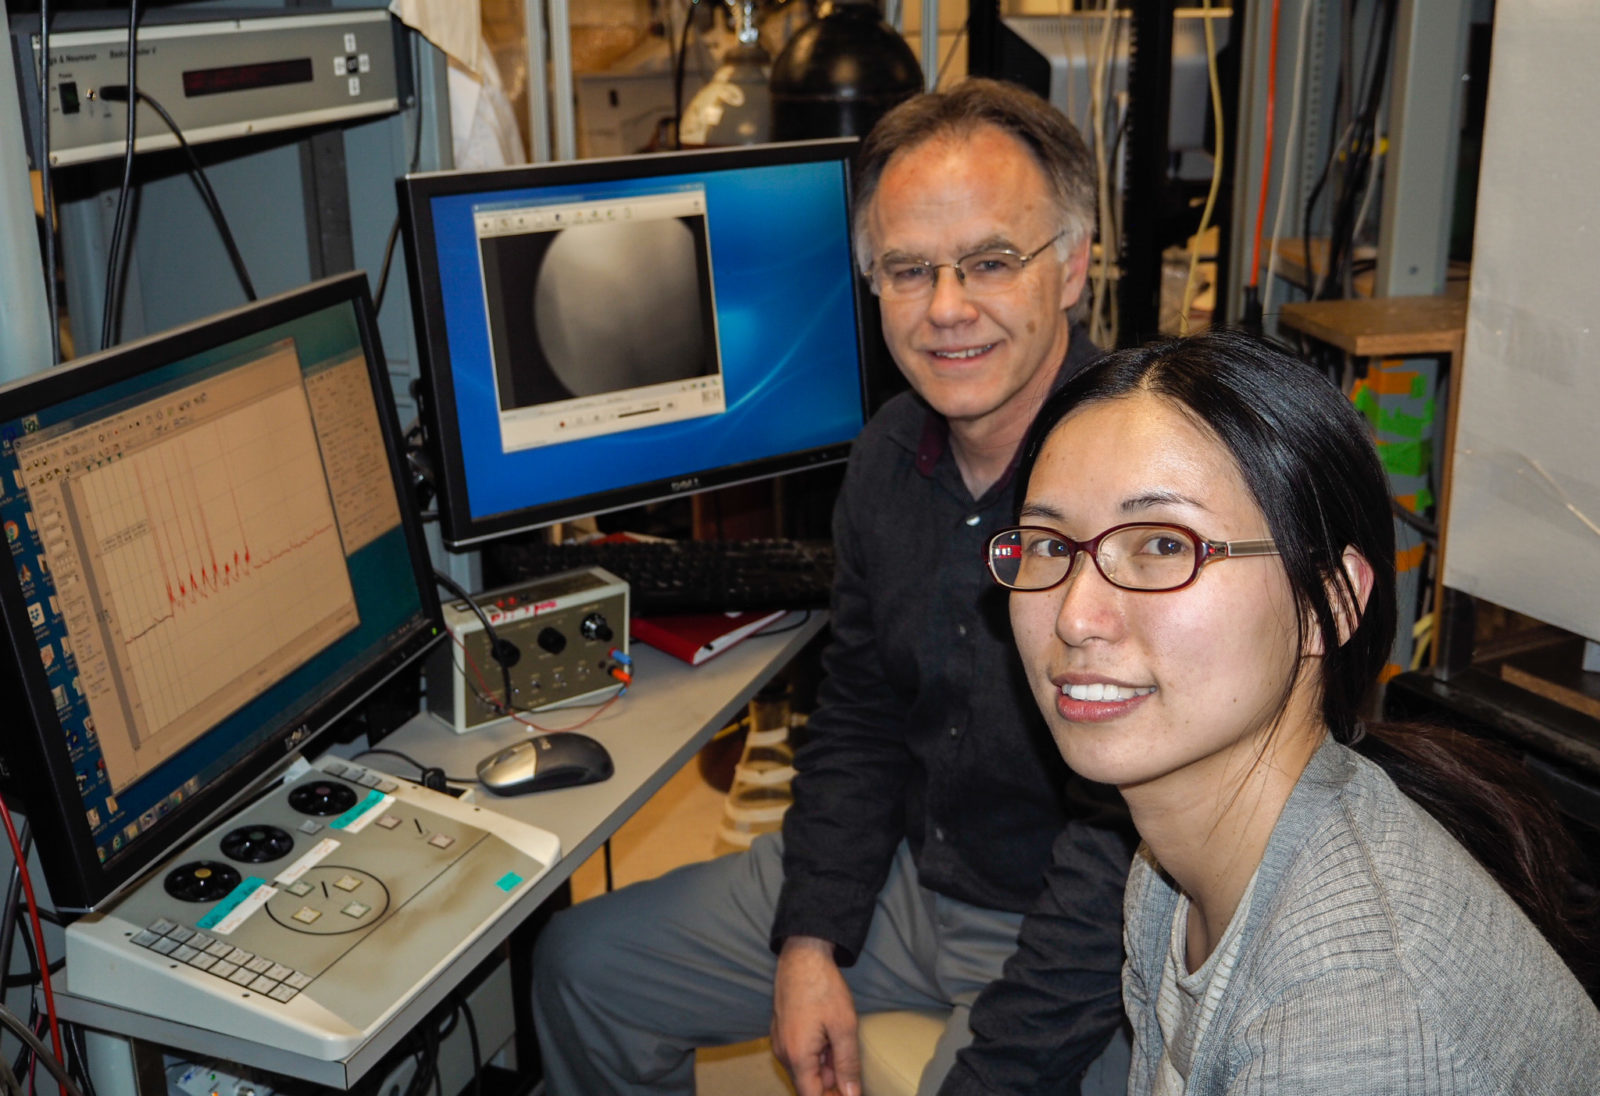 Ray Turner, PhD and Xiaoqin Zhan, PhD